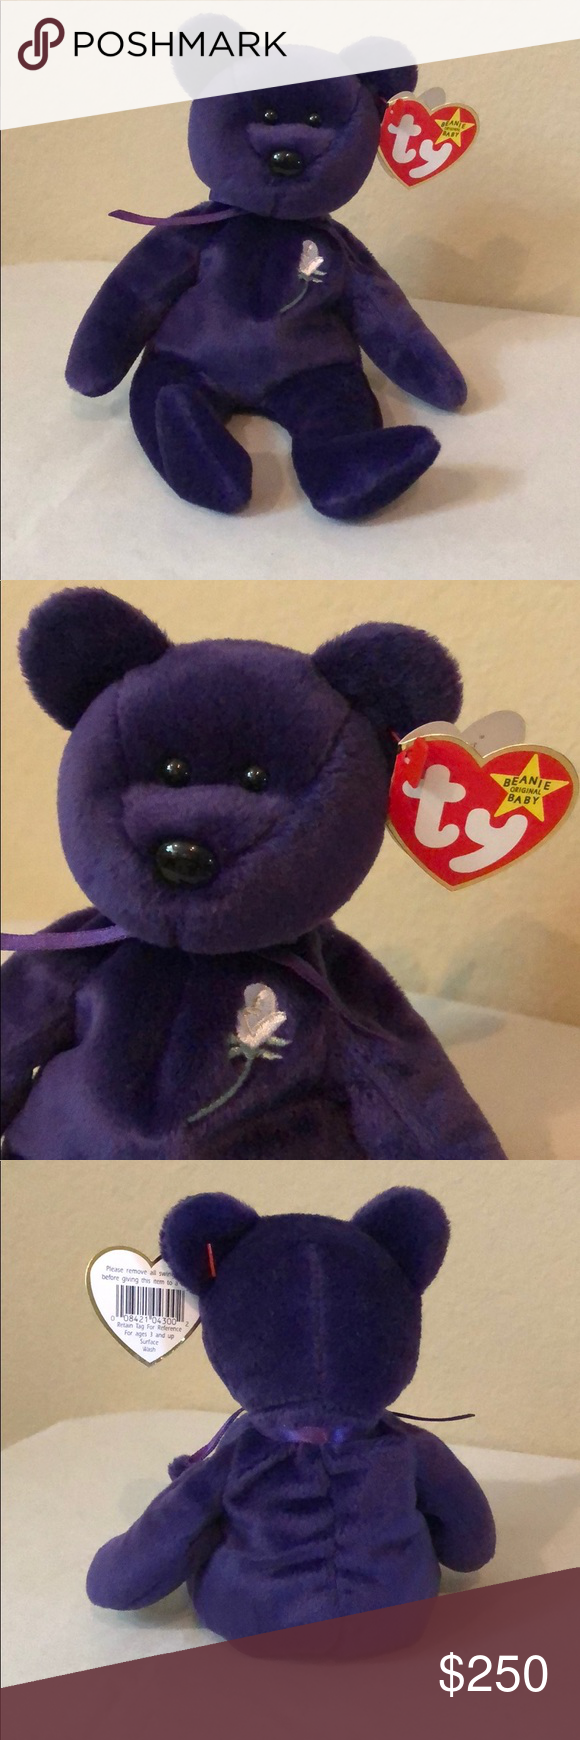 Princess Dianna Ty The Beanie Babies Collection I just added this listing on Poshmark: Princess Dianna Ty The Beanie Babies Collection.